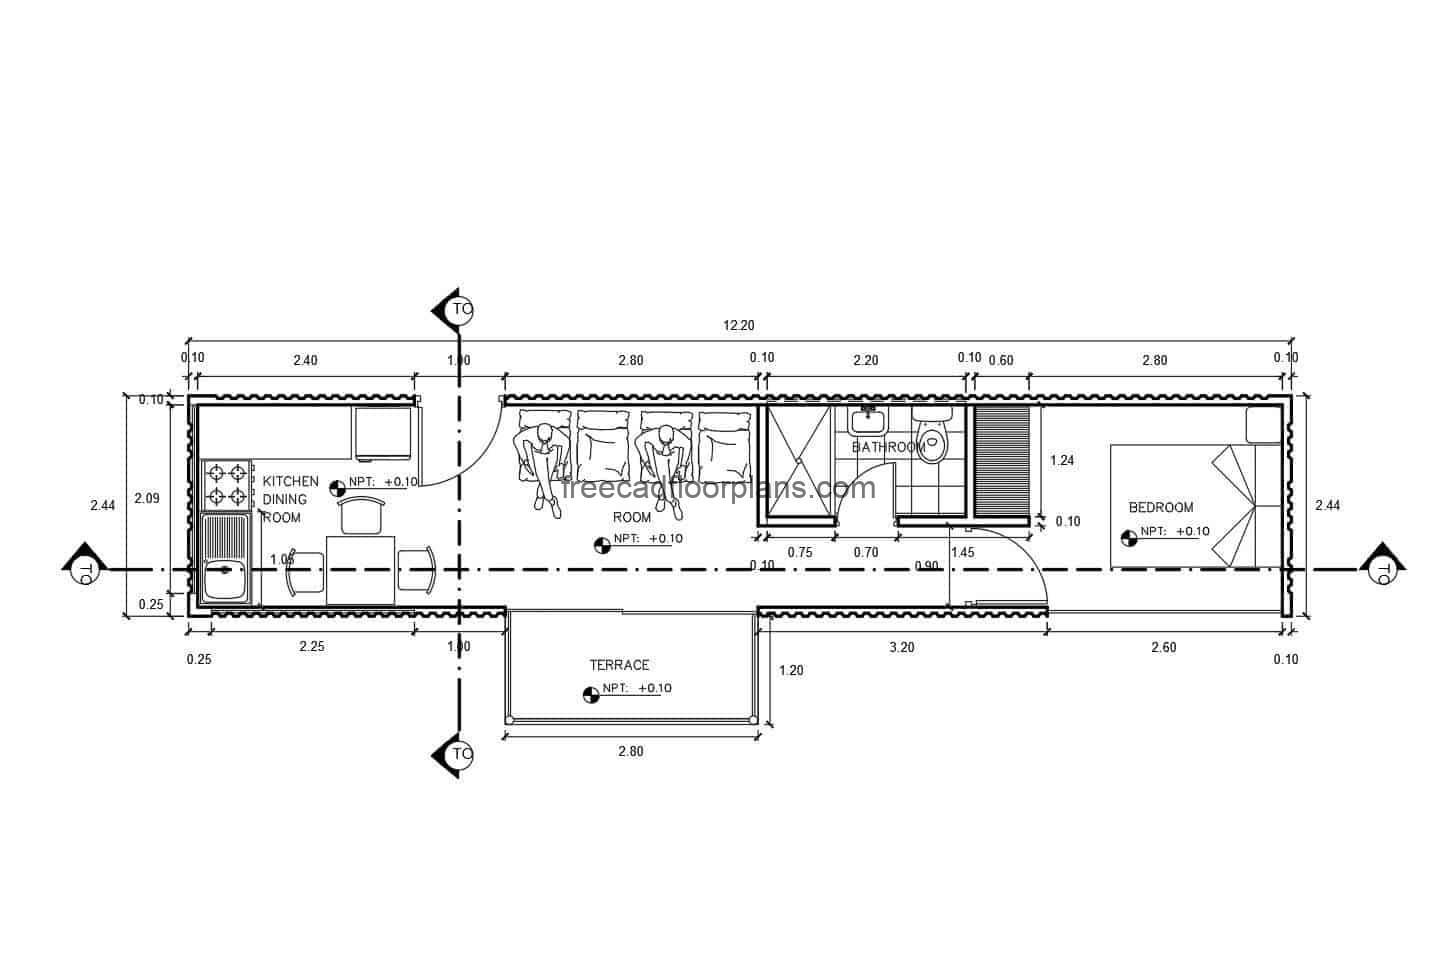 Architectural layout plan of a small house in a container, details and floor plan in DWG autocad format